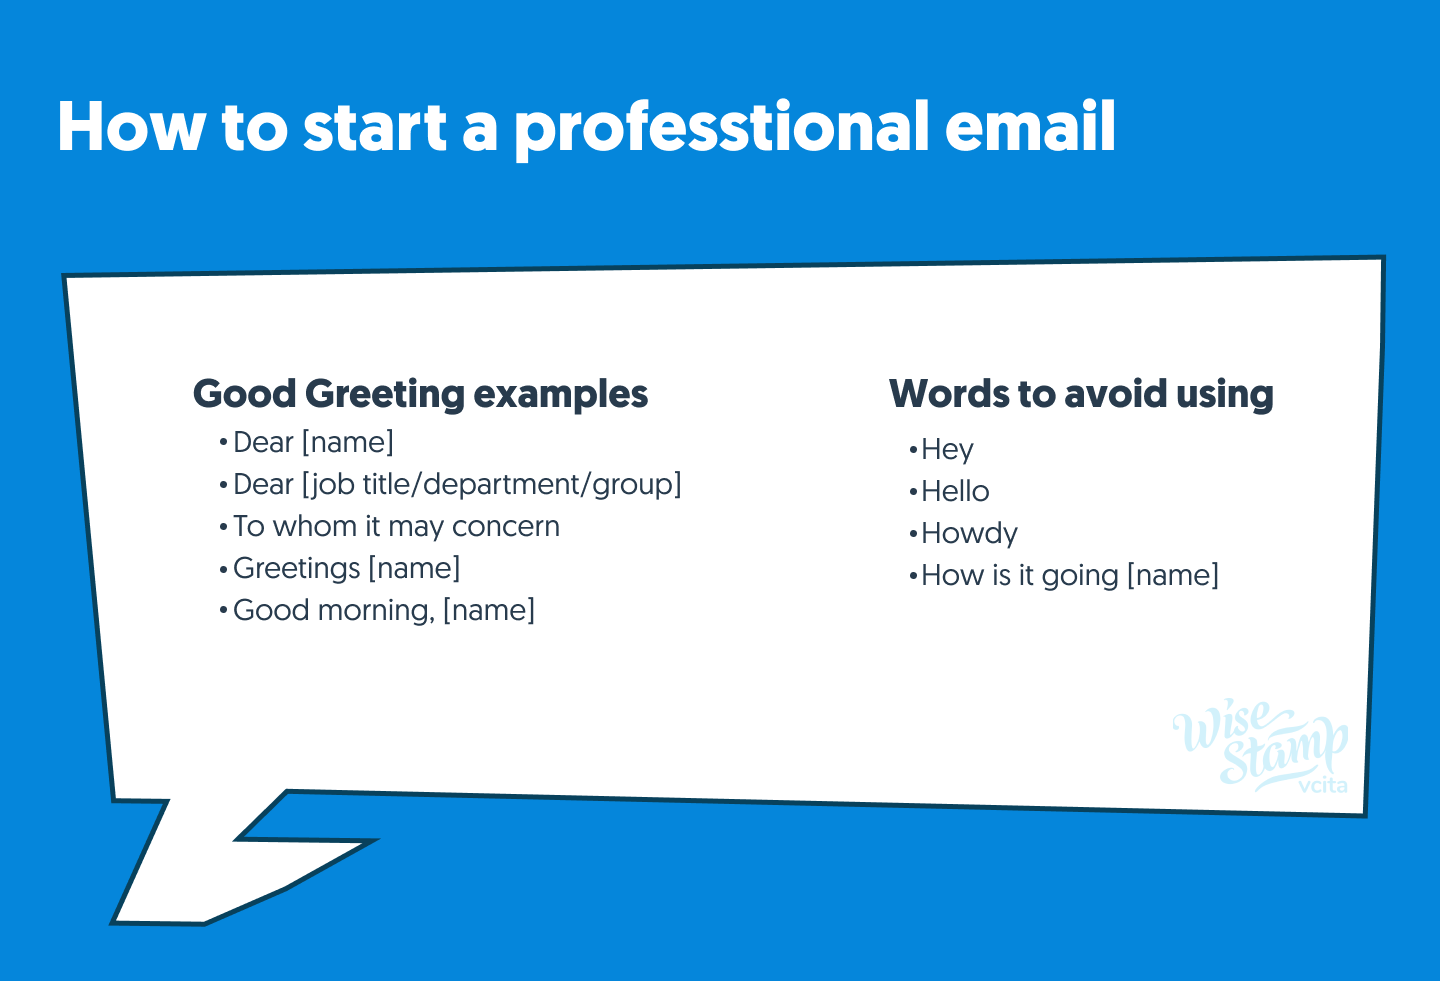 Messages professional examples email Professional Letter